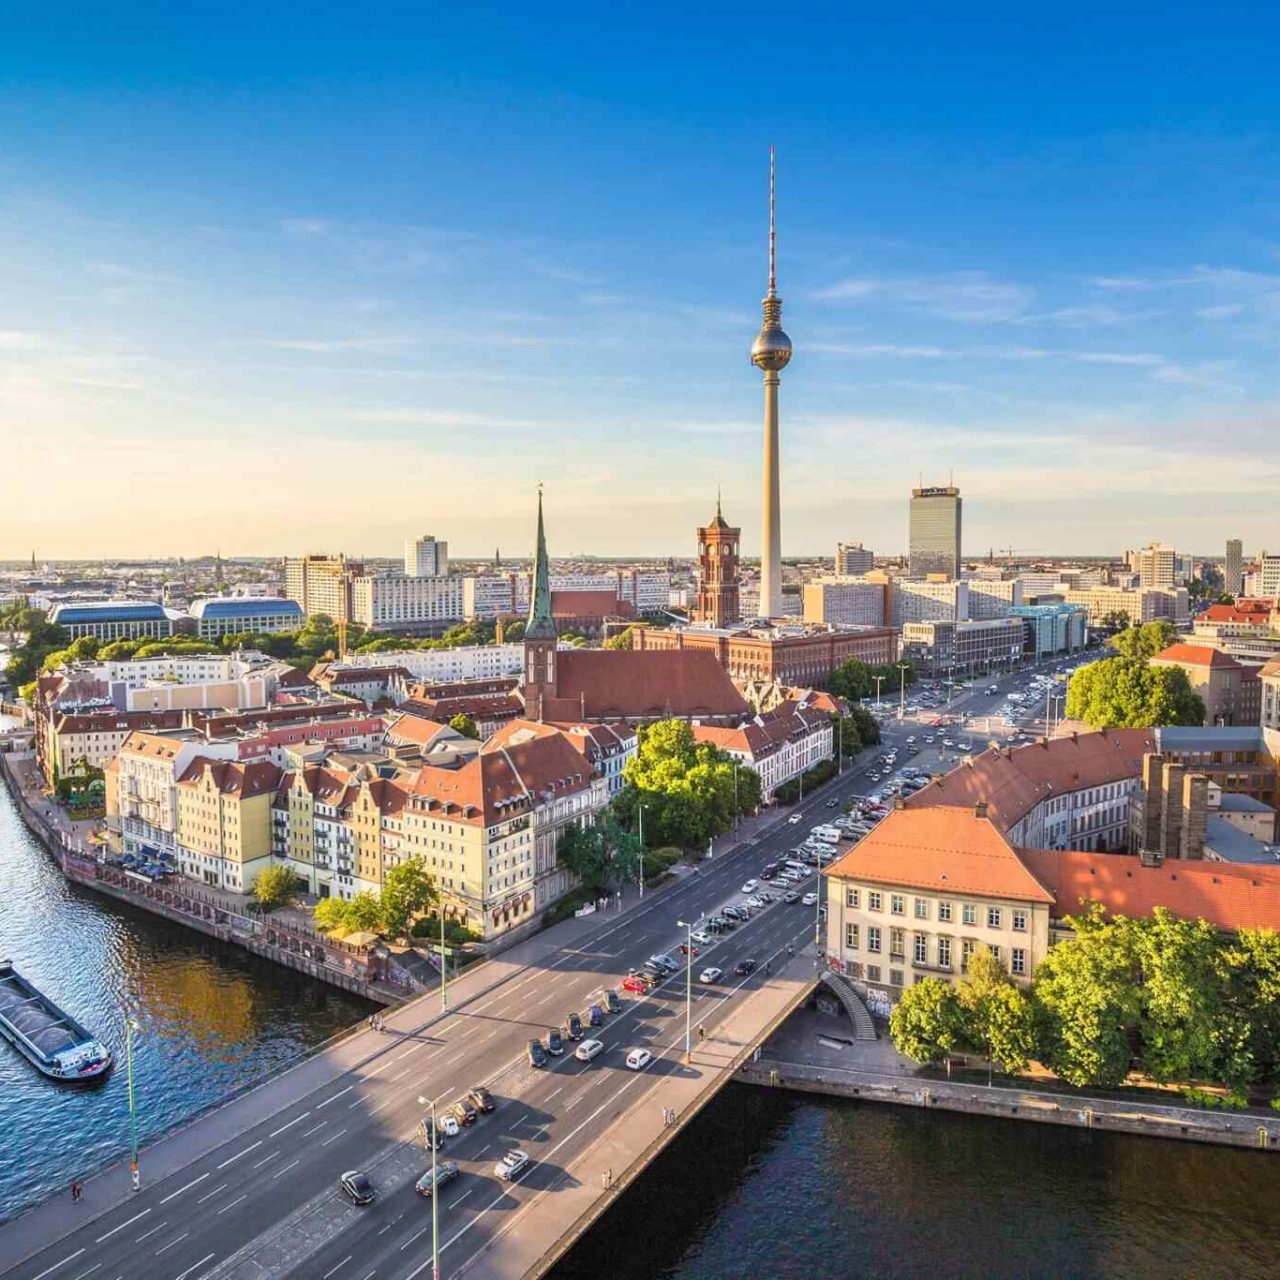 https://proline.co/wp-content/uploads/2018/09/destination-berlin-05-1280x1280.jpg